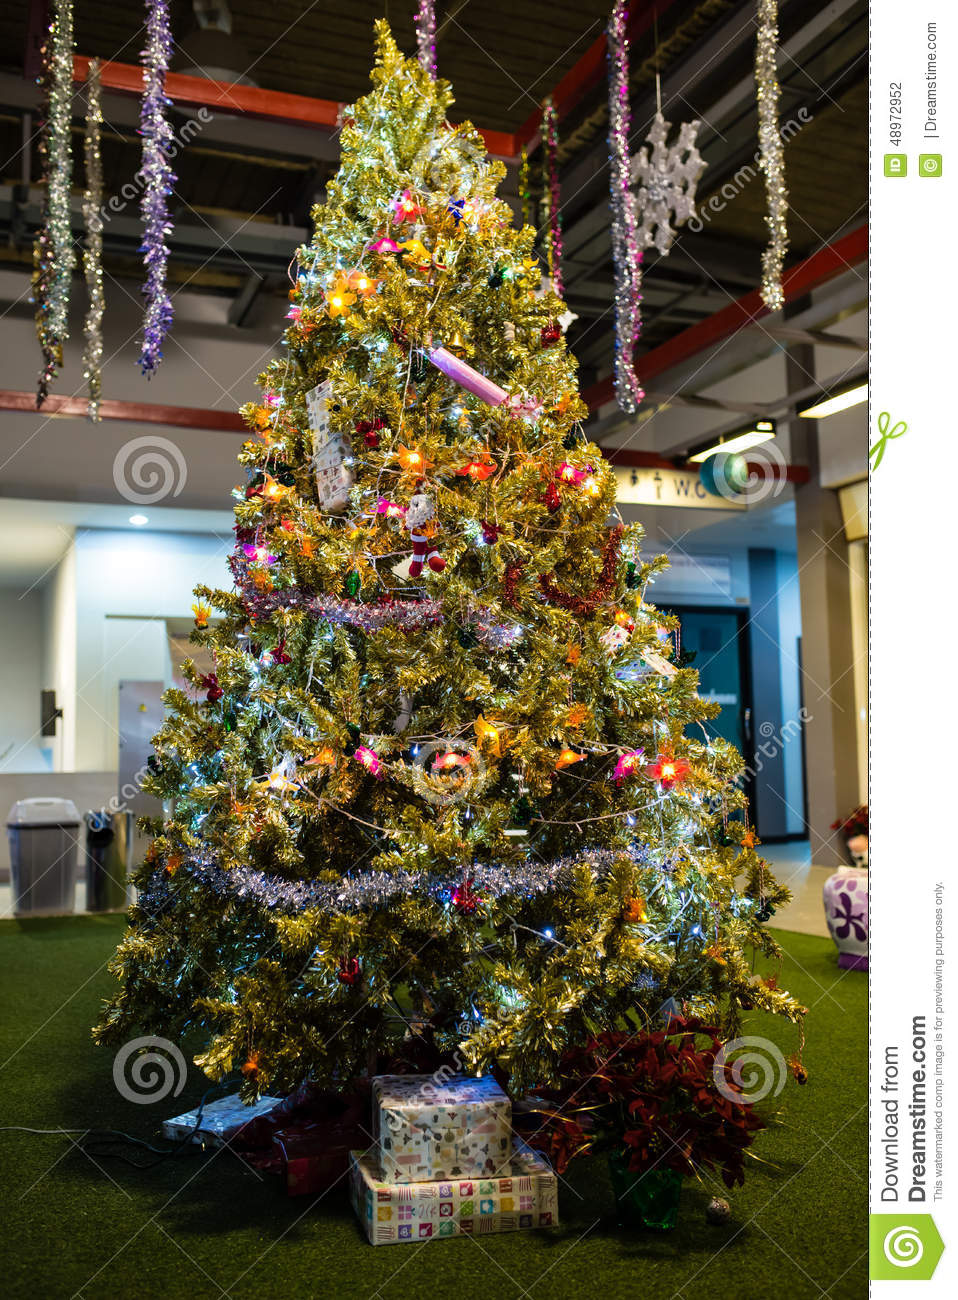 Christmas tree with presents and lights - Artificial Green Christmas Tree Lots Of Presents Under The Tree Stock Photo